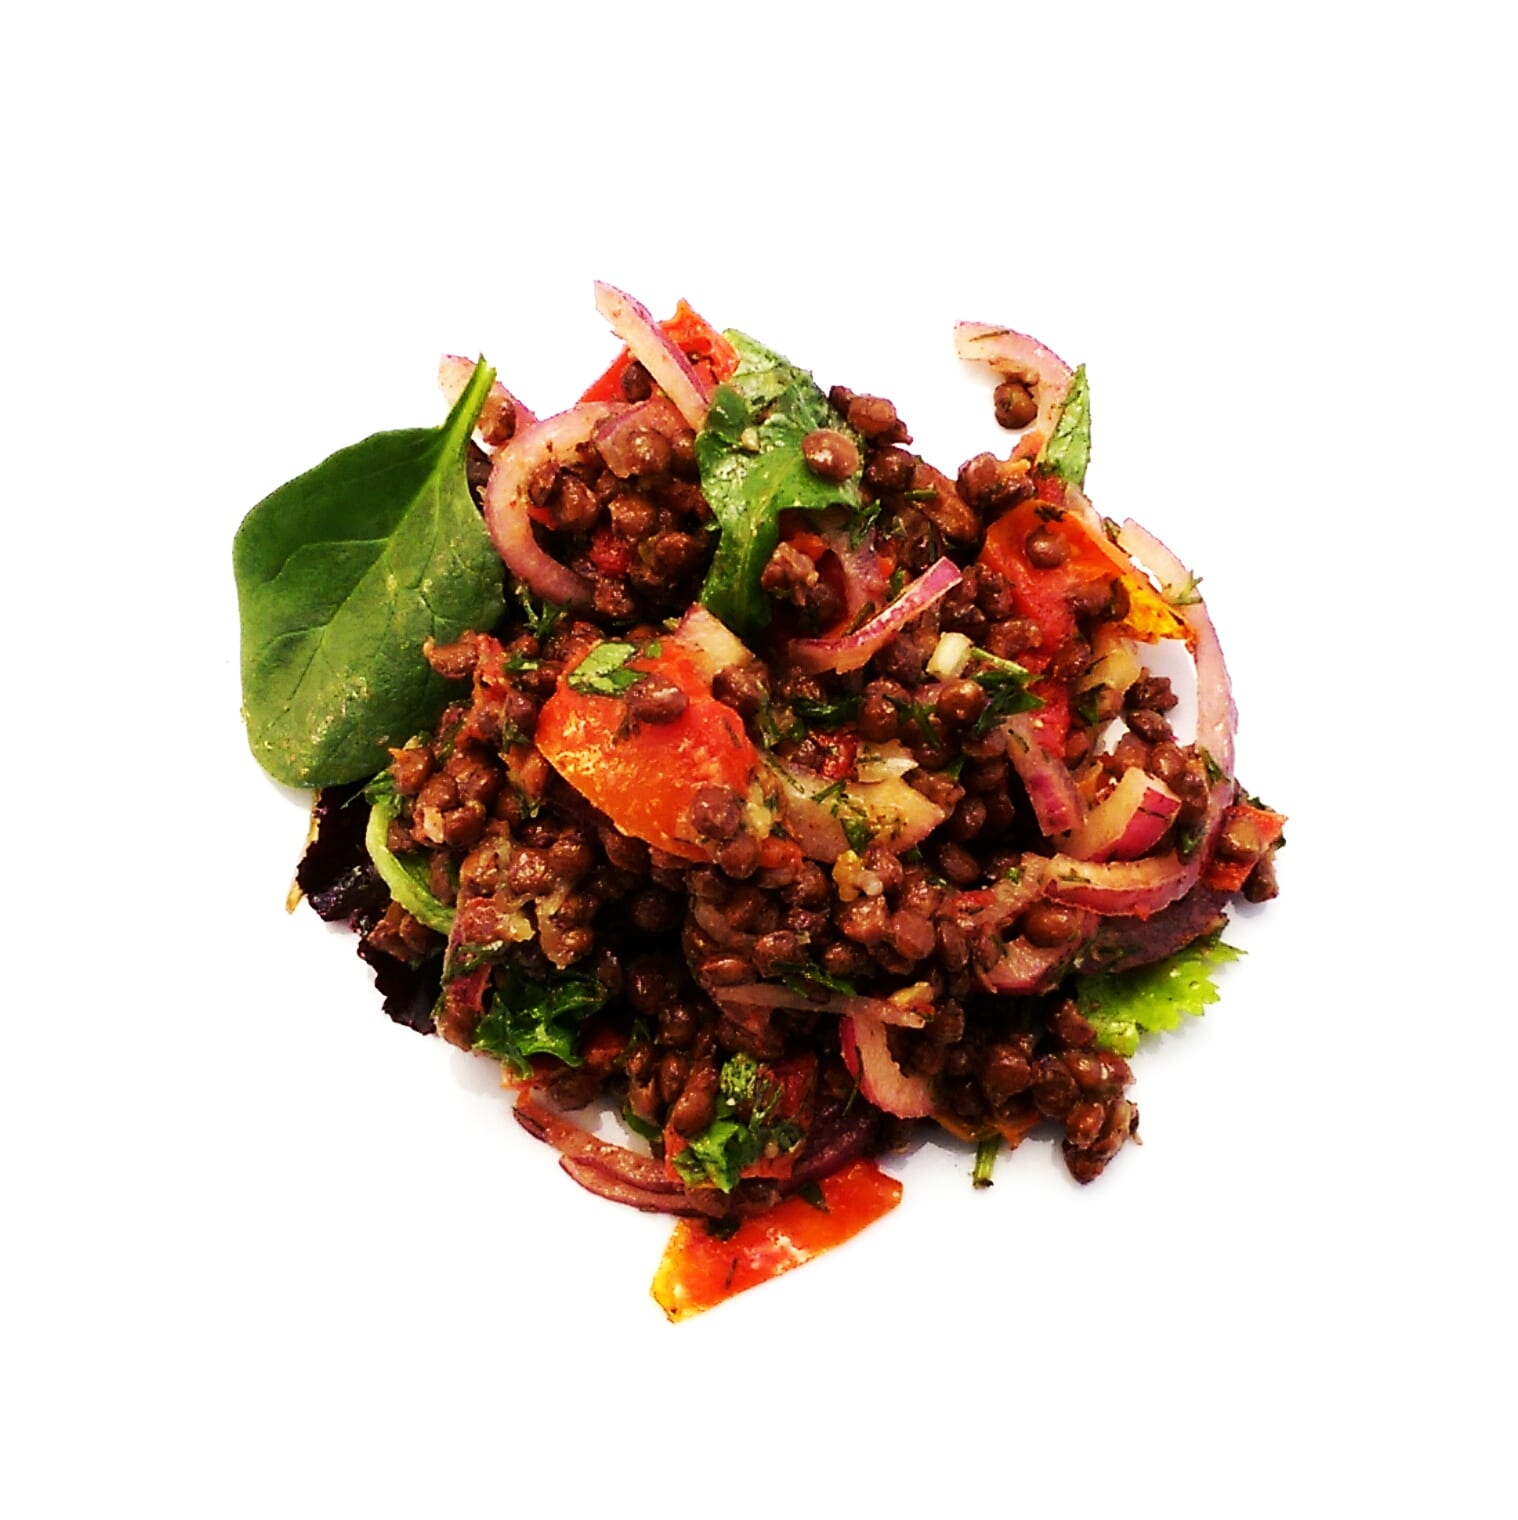 Lush lentil and sun dried tomato salad